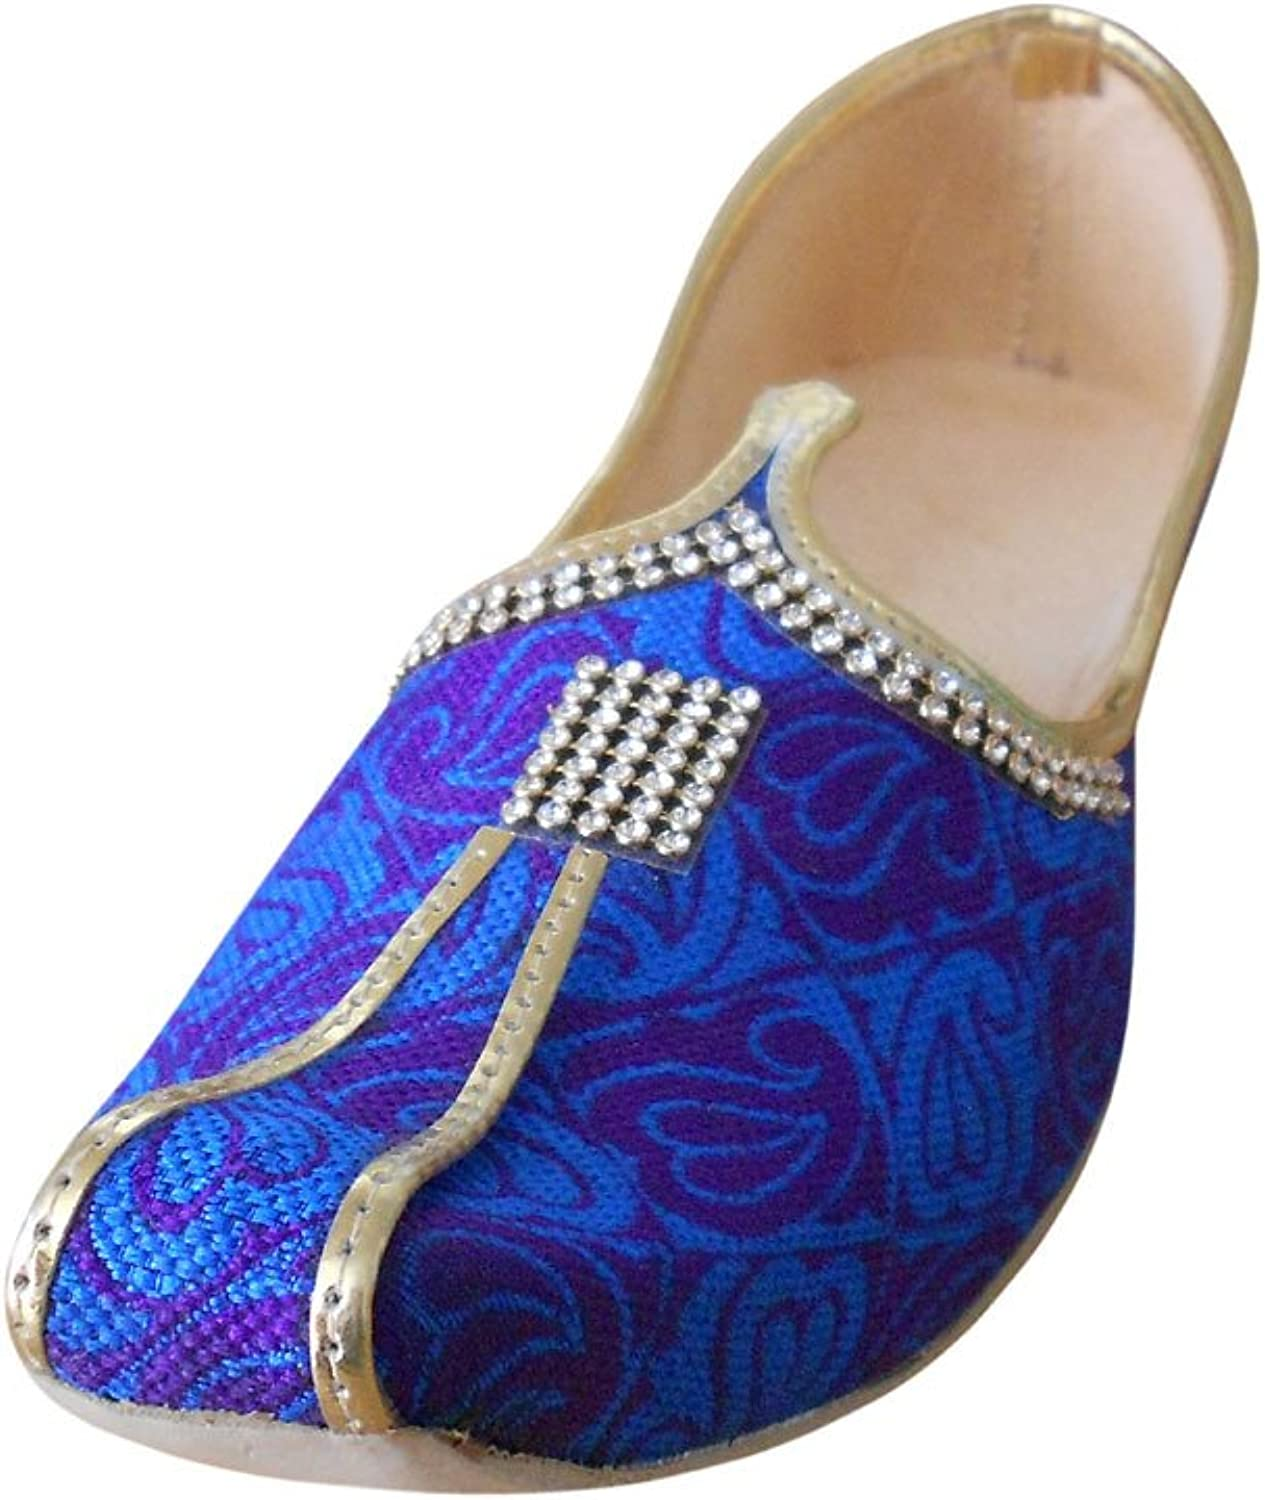 Kalra Creations Men's Traditional Jutti Indian Wedding Stylish shoes